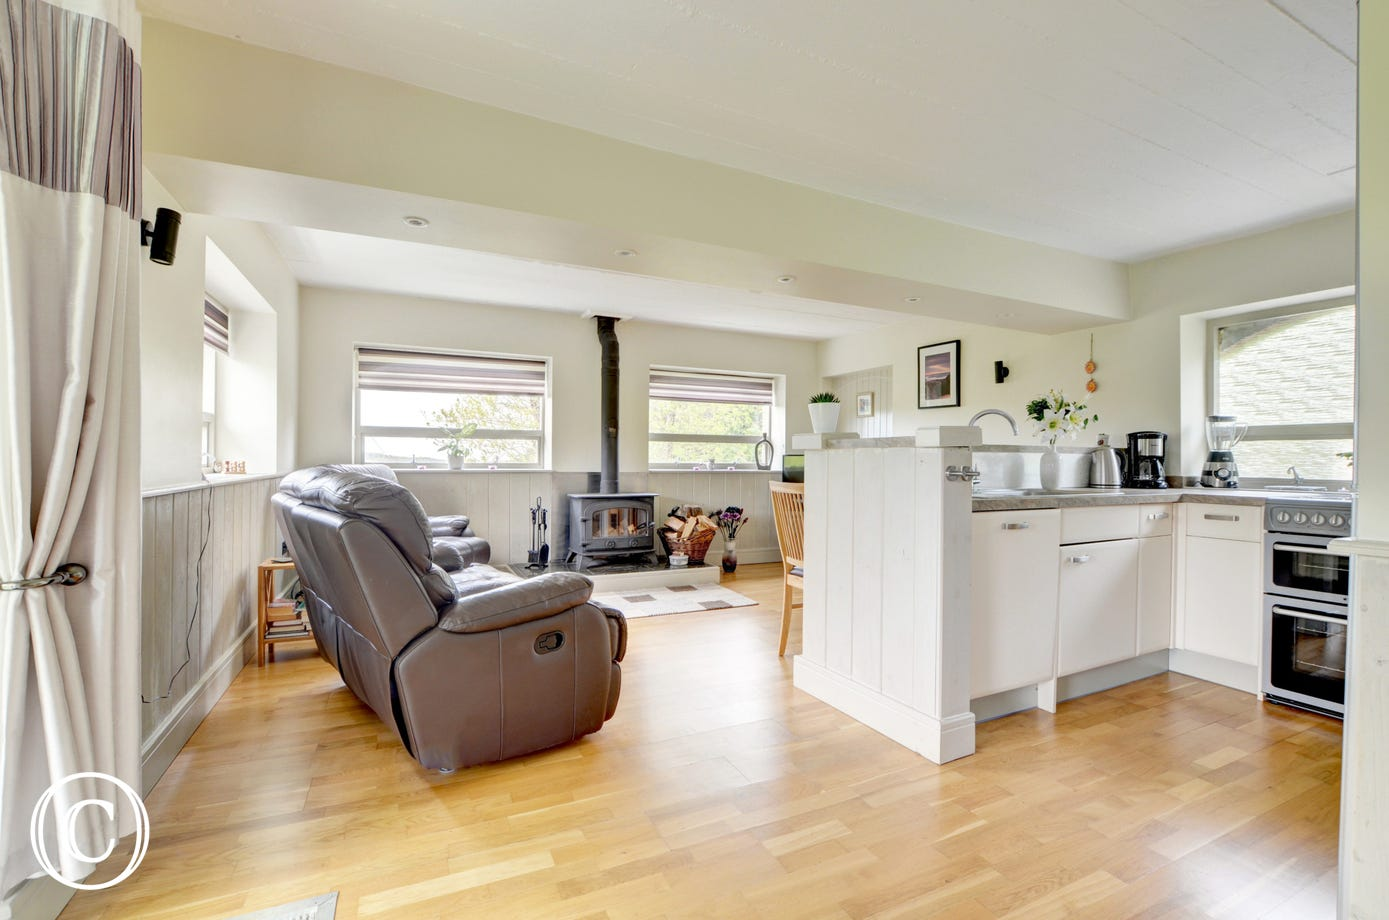 The cottage is stylishly decorated with tongue and groove wood panelling and wooden floors